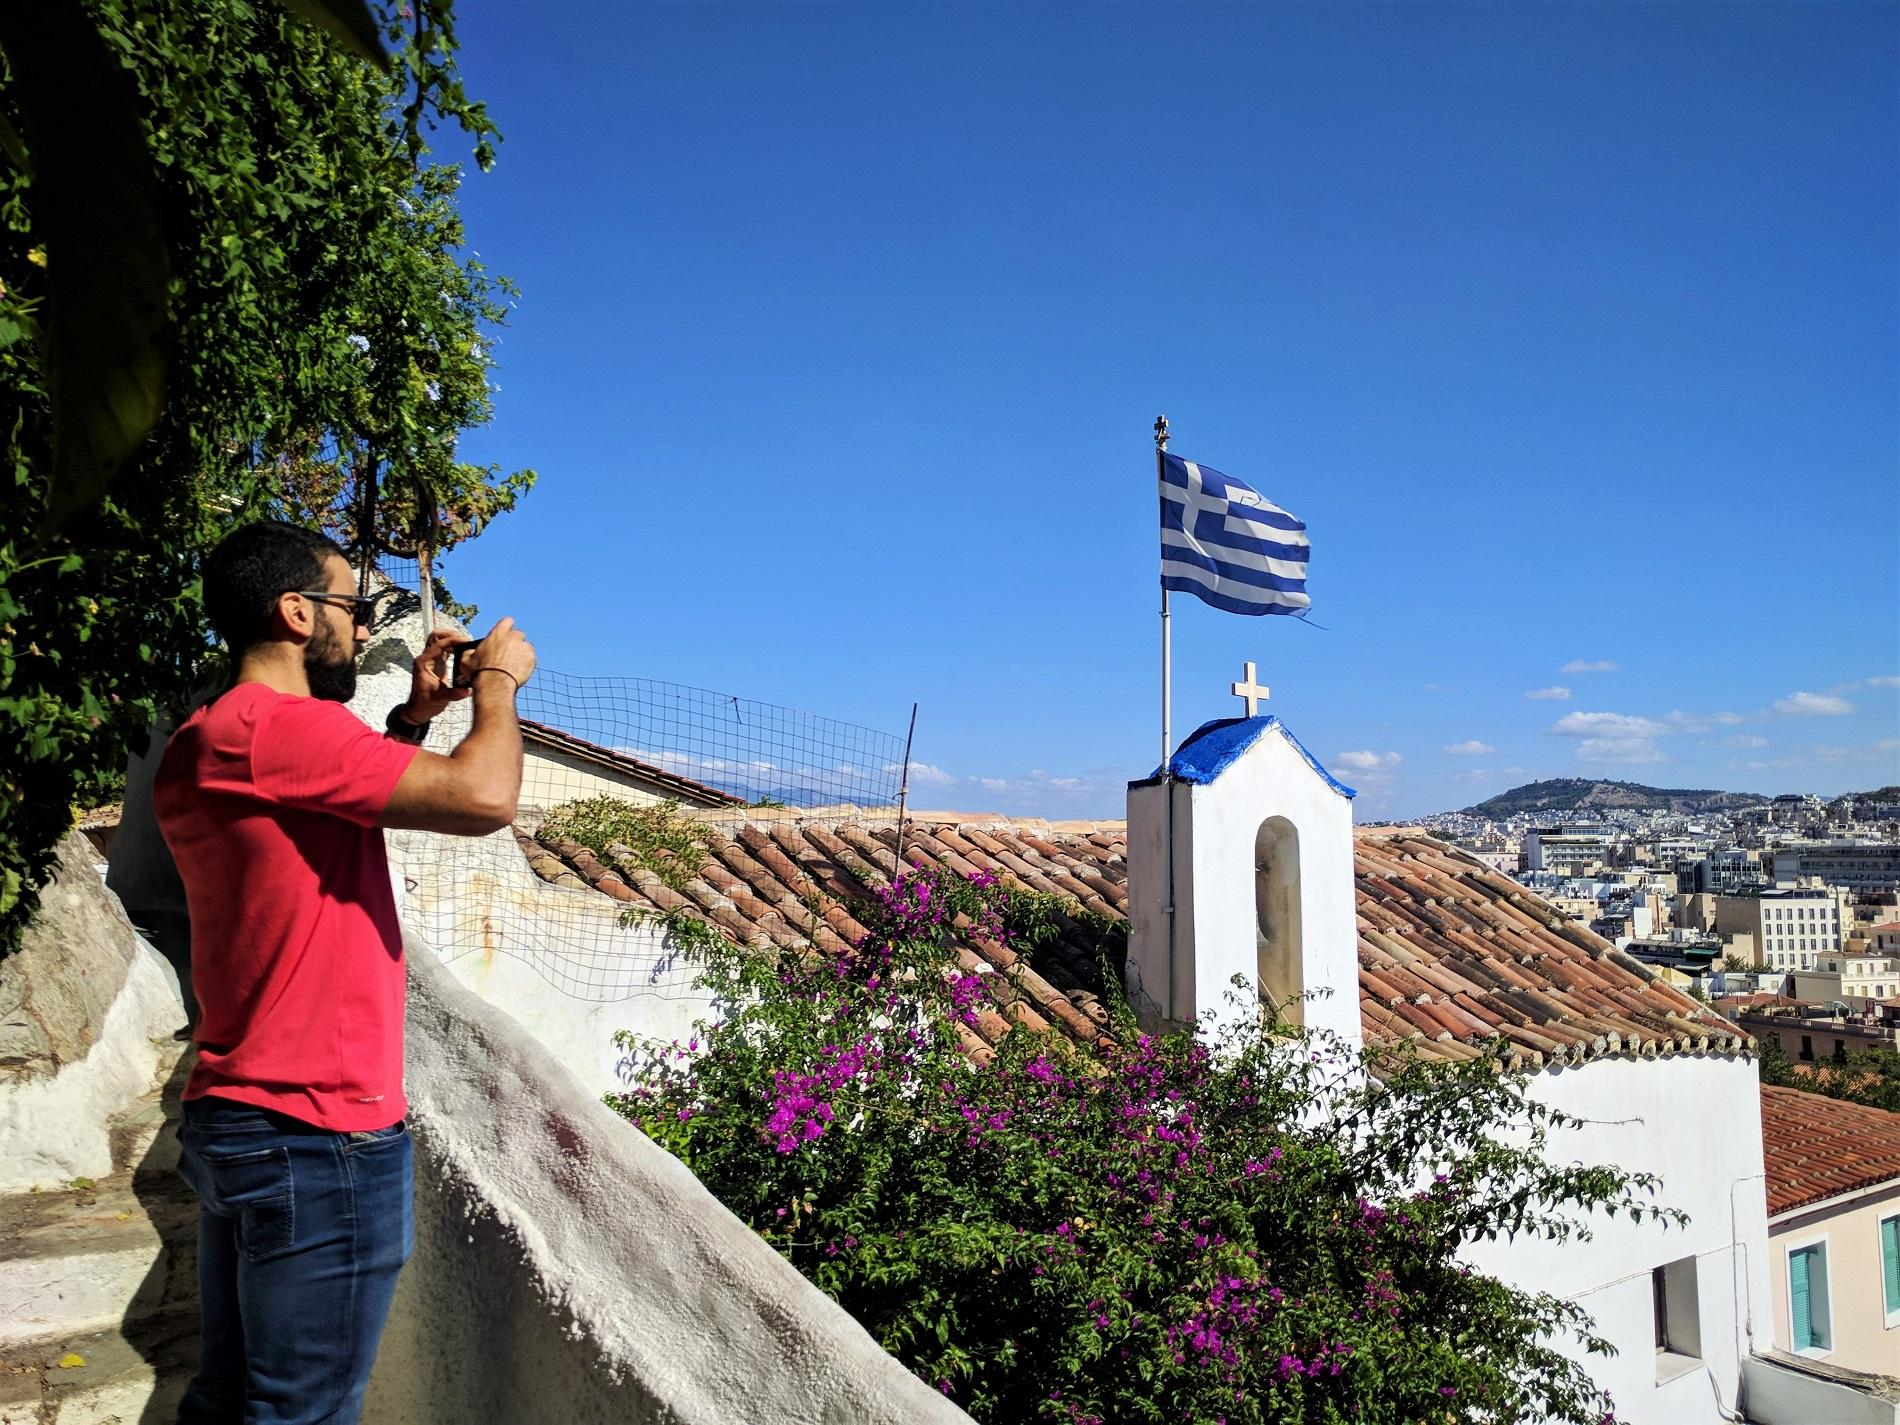 If you enjoy photography, you can admire Plaka's quaint houses, graffities and picturesque scenery in our  Athens Instagram Photo tour !